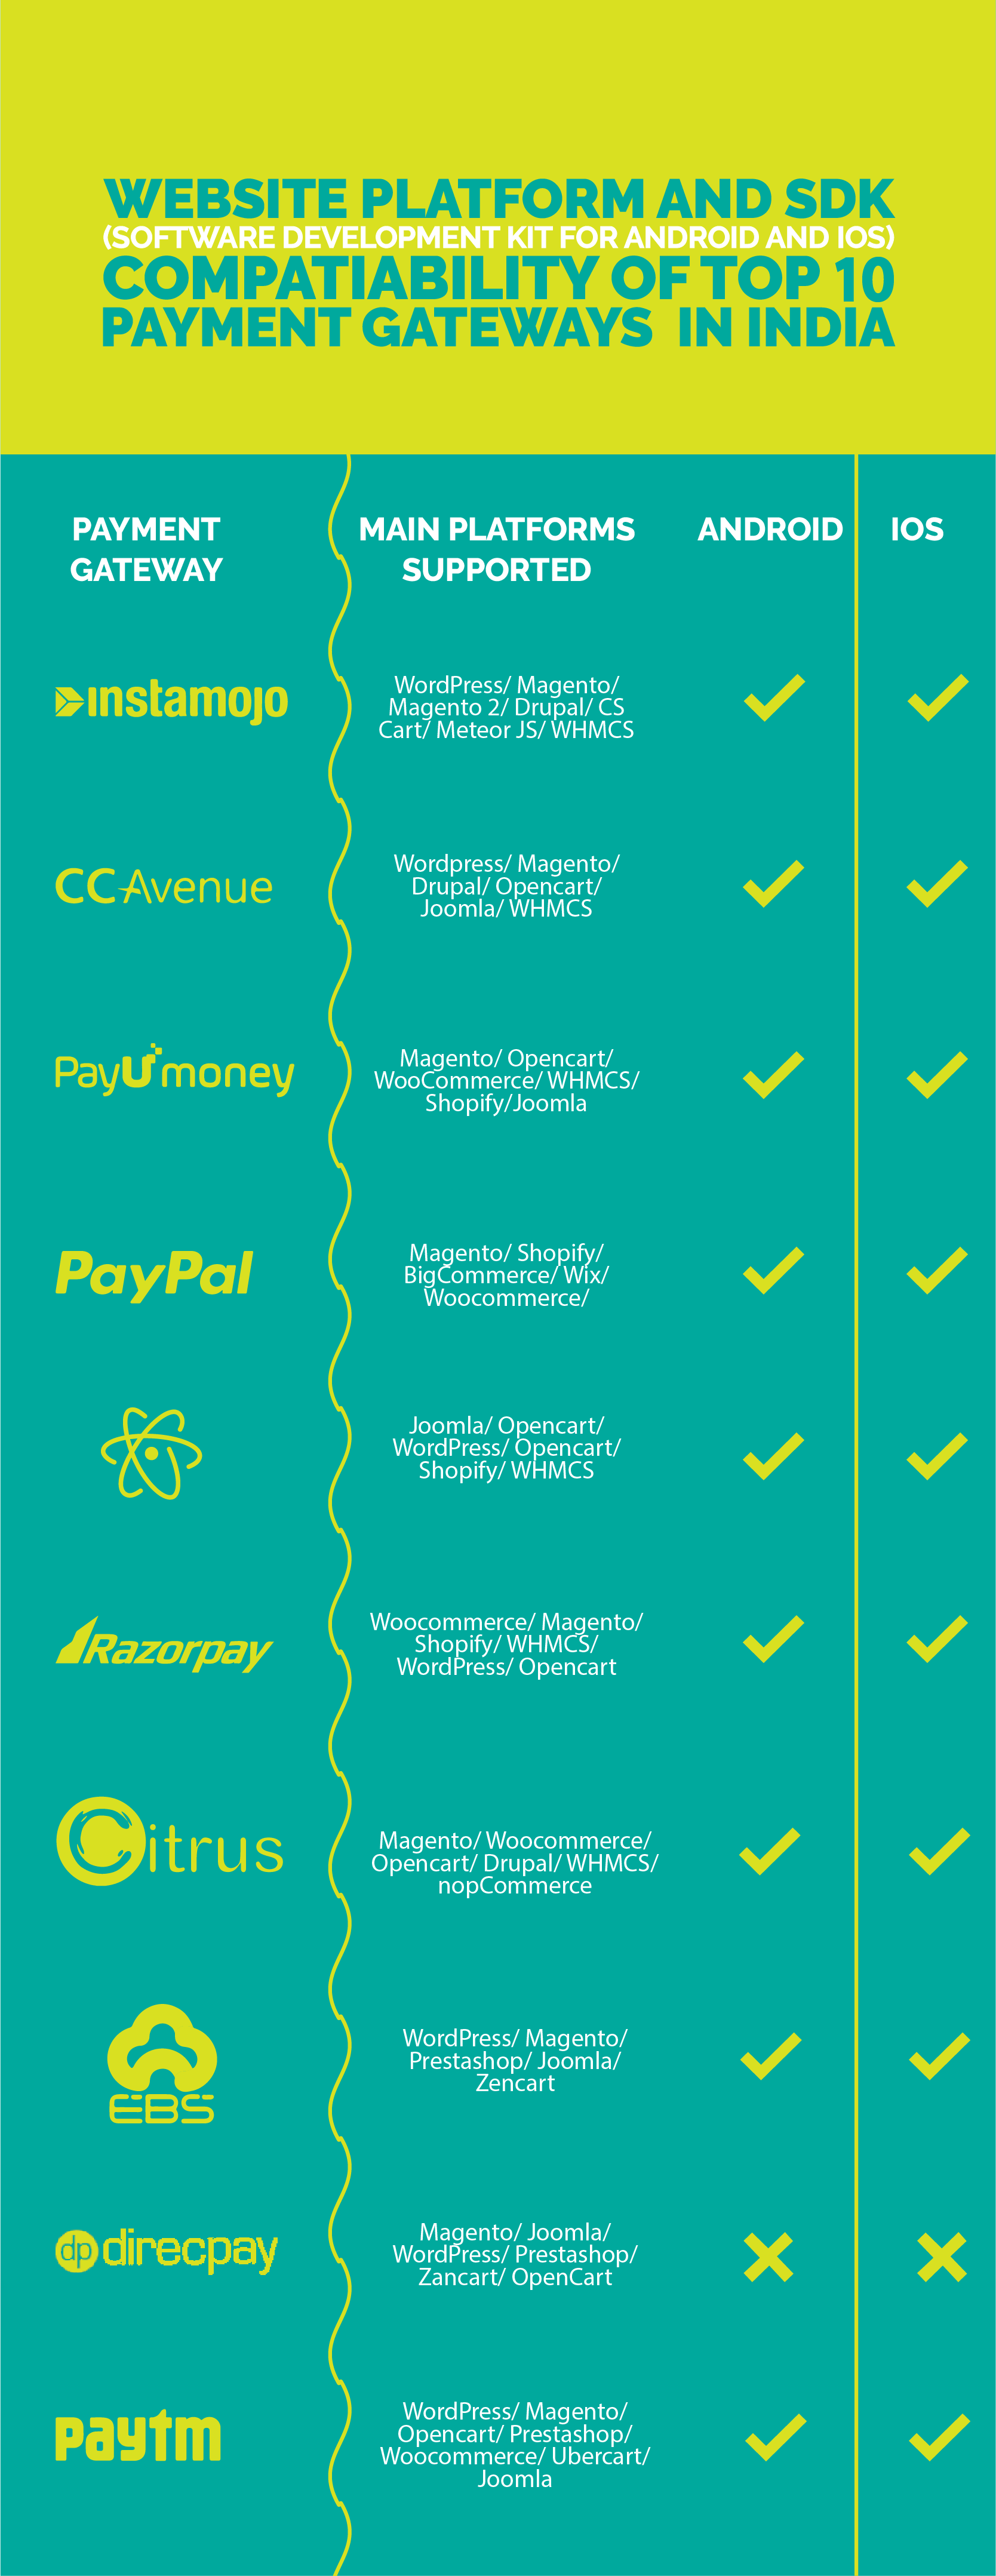 Top 10 payment gateways